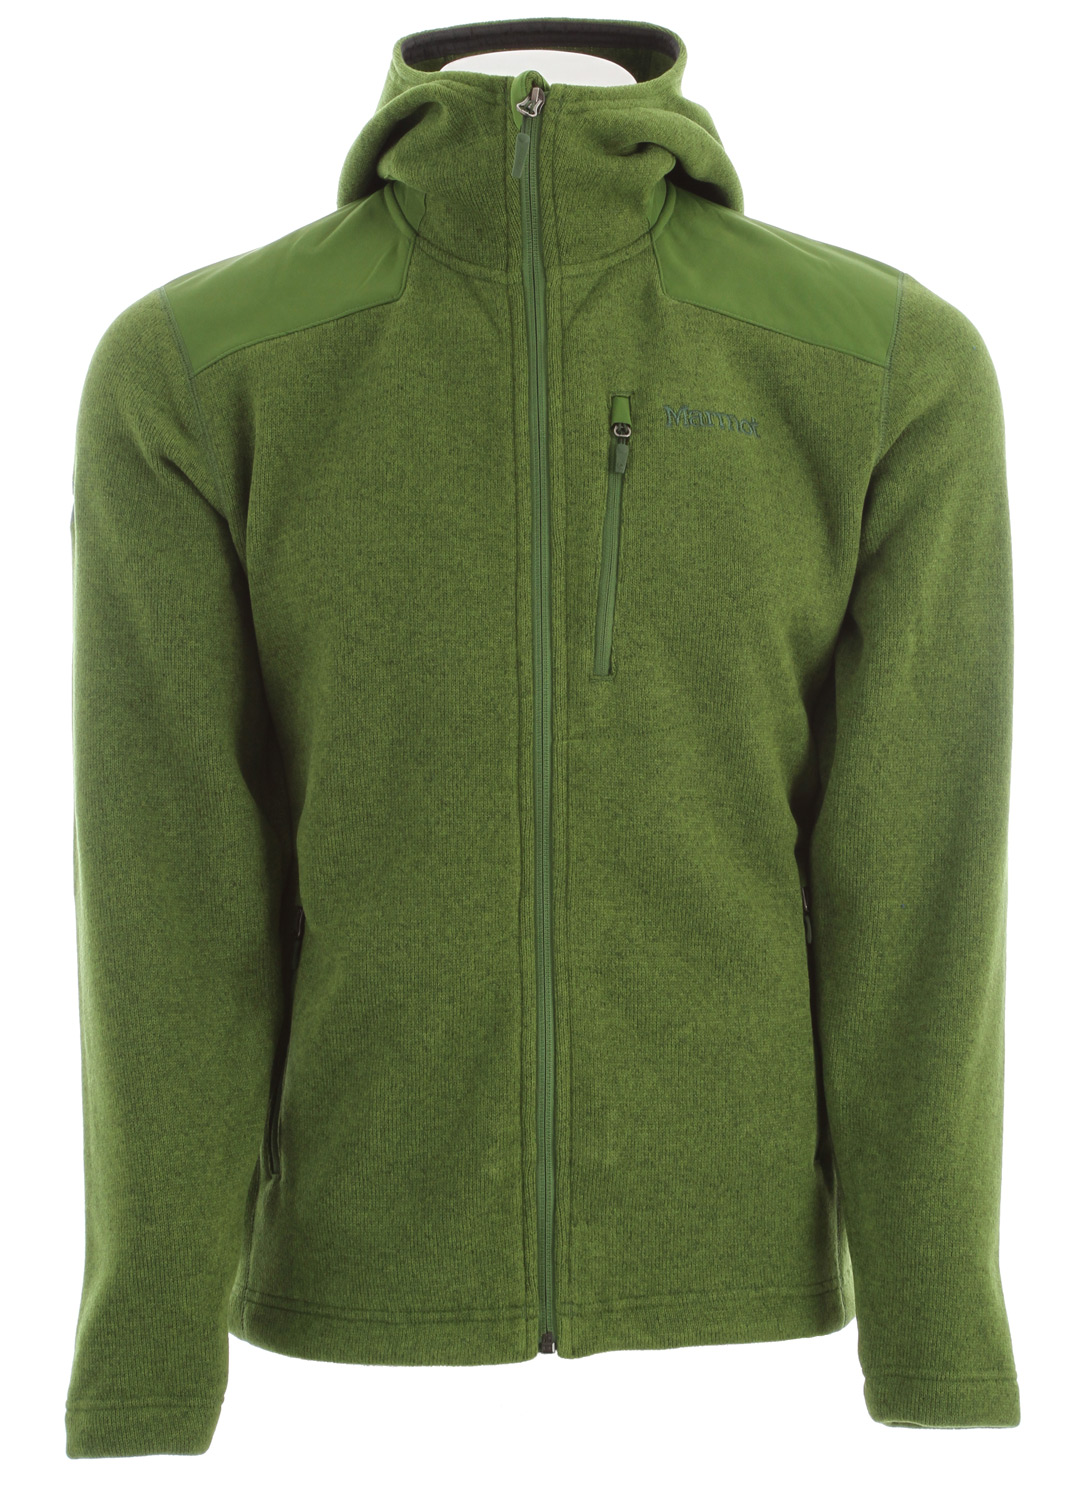 The Norhiem may have the good looks of a wool sweater, but it's made from easy-care polyester fleece. The jacket has a sweater knit exterior that's smart around town; durable nylon reinforcements offer protection. Zippered chest and handwarmer pockets secure valuables. Elastic drawcord hem blocks out chilly drafts.Key Features of the Marmot Norhiem Hoody Fleece: Sweater Knit Fleece Nylon Reinforcement Zippered Chest Pocket Zippered Handwarmer Pockets Elastic Draw Cord Hem - $102.95